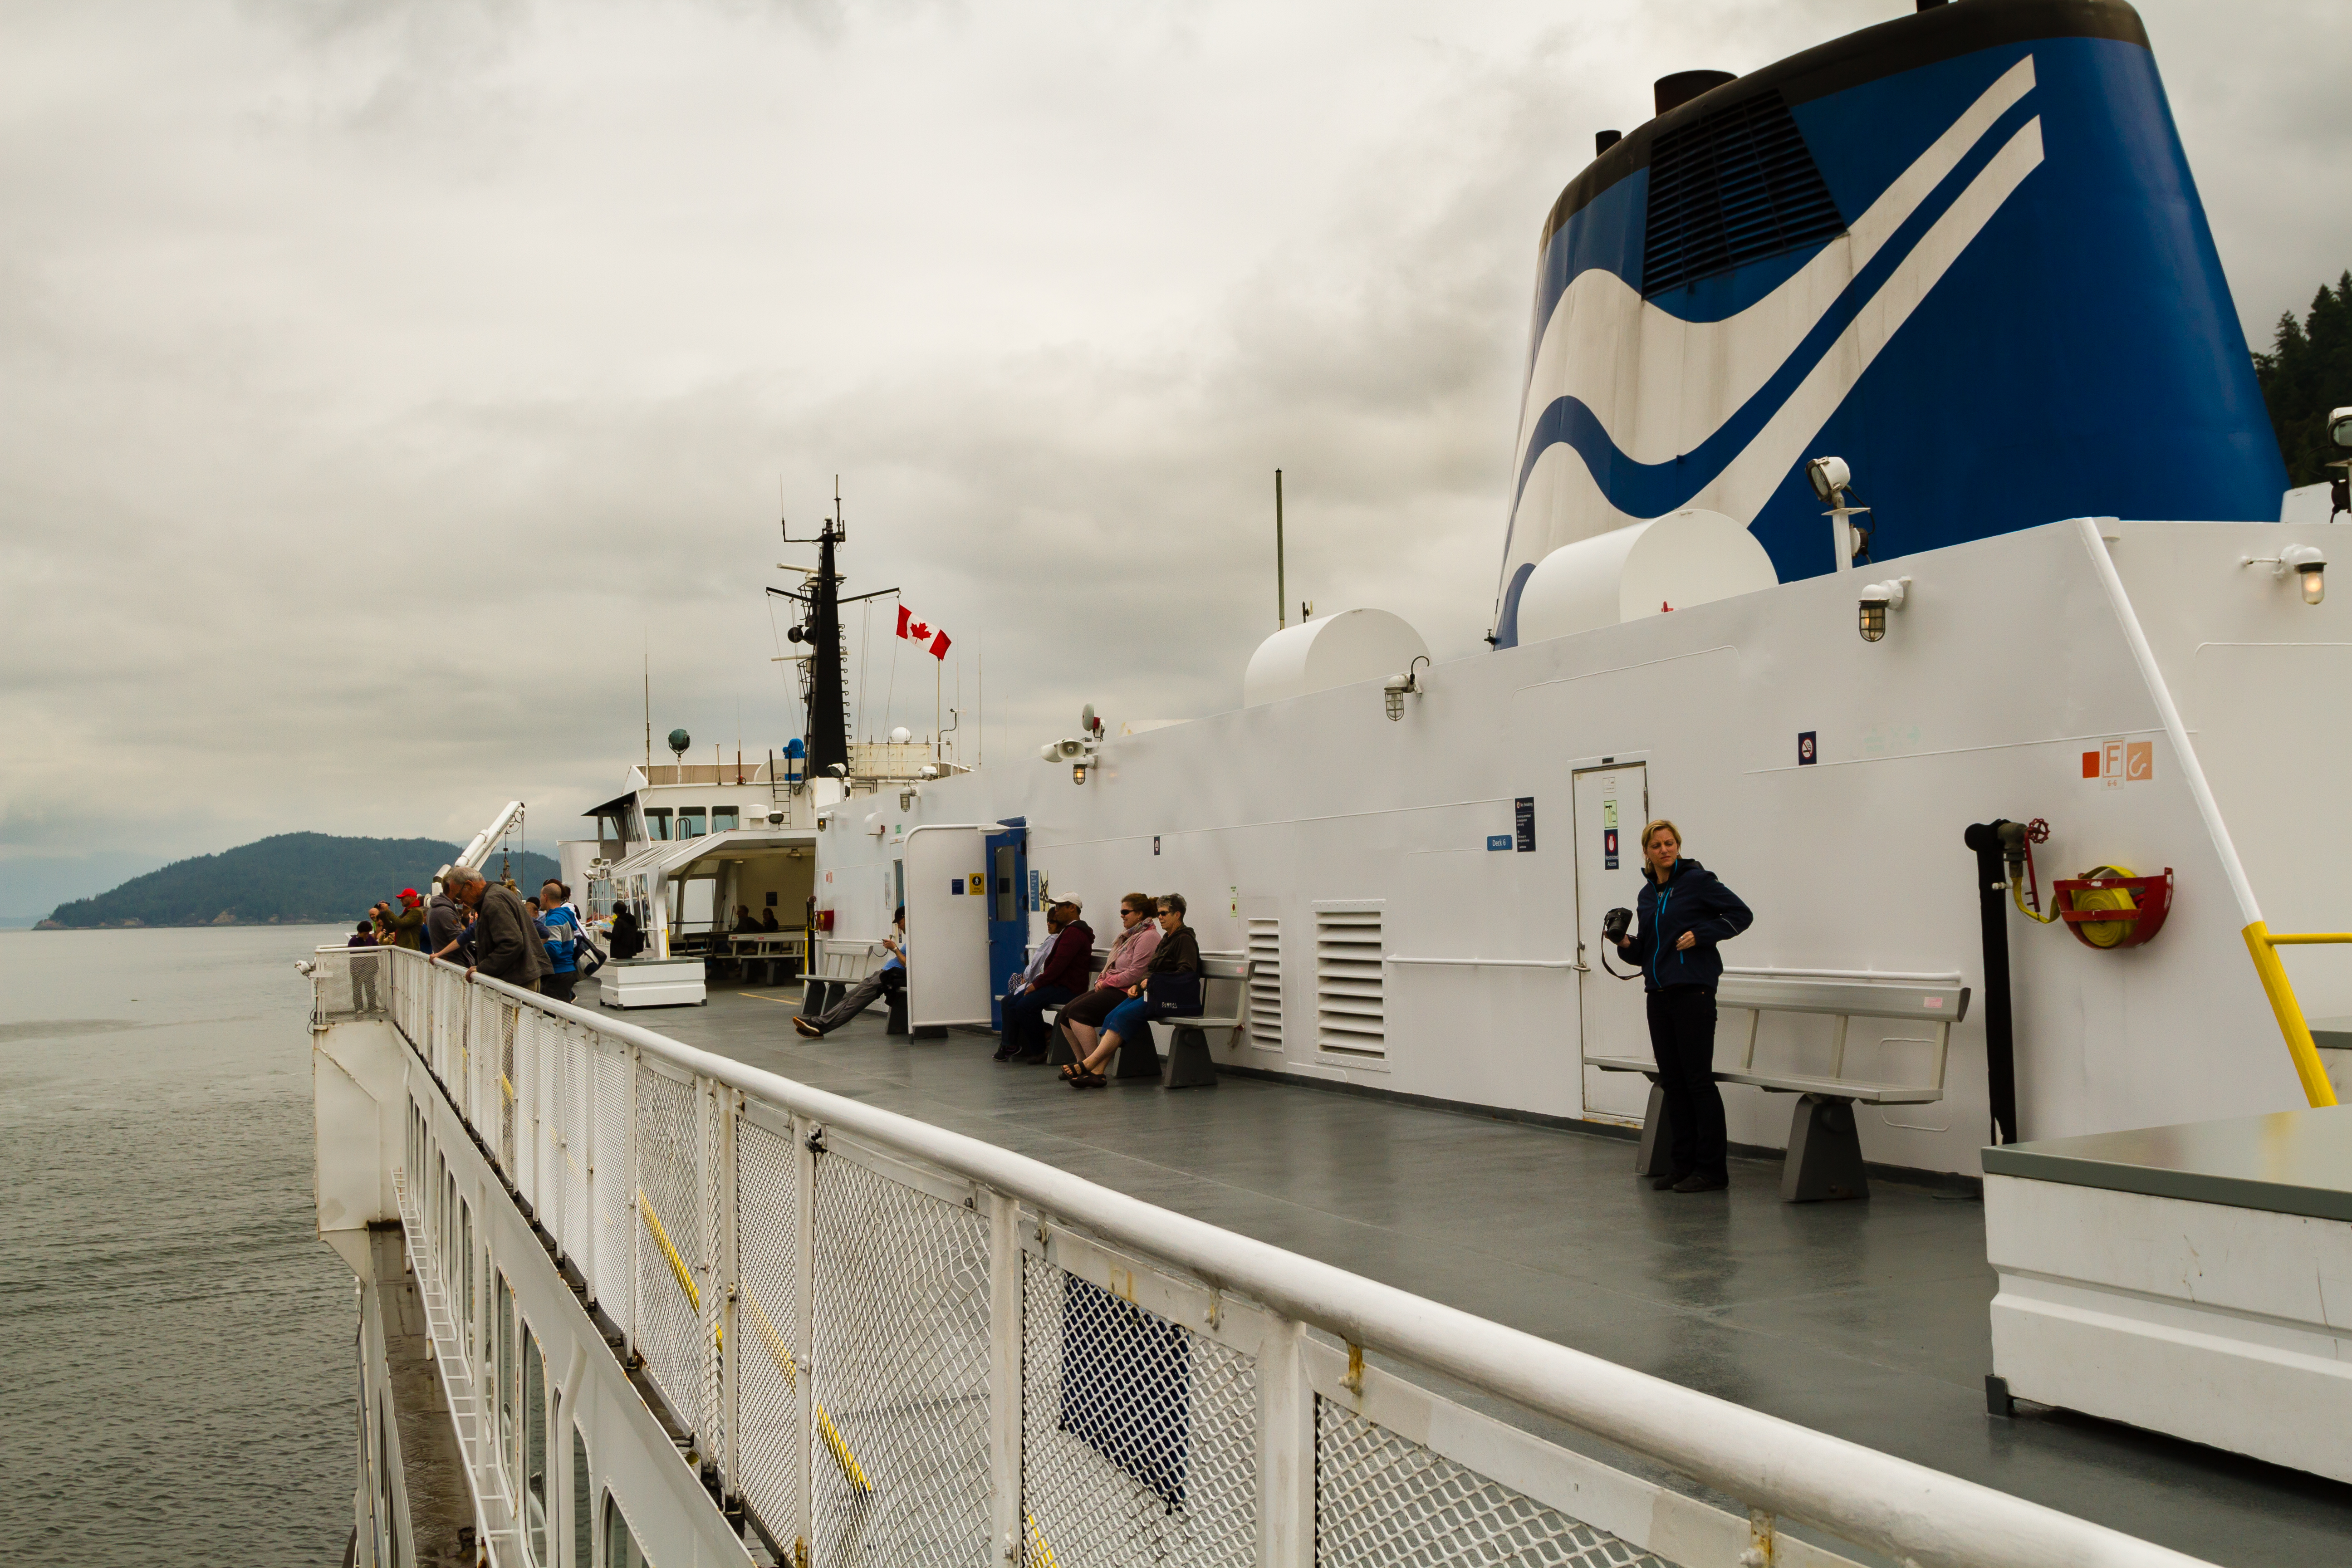 Crossing the Salish Sea from Vancouver to Vancouver Island.